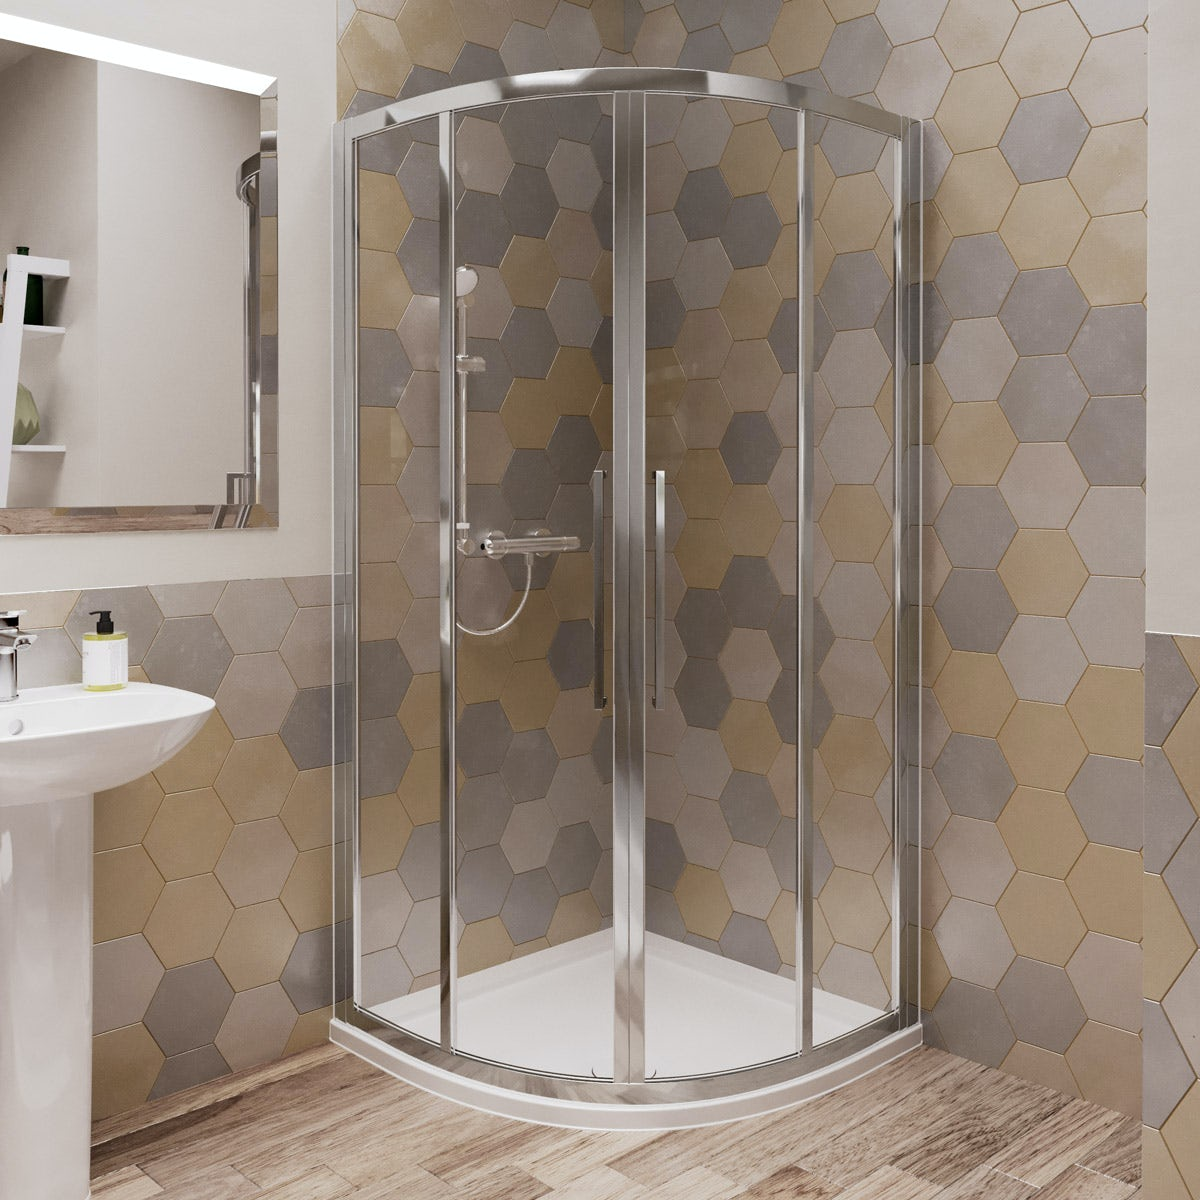 Ideal Standard 6mm sliding Idealclean quadrant shower enclosure